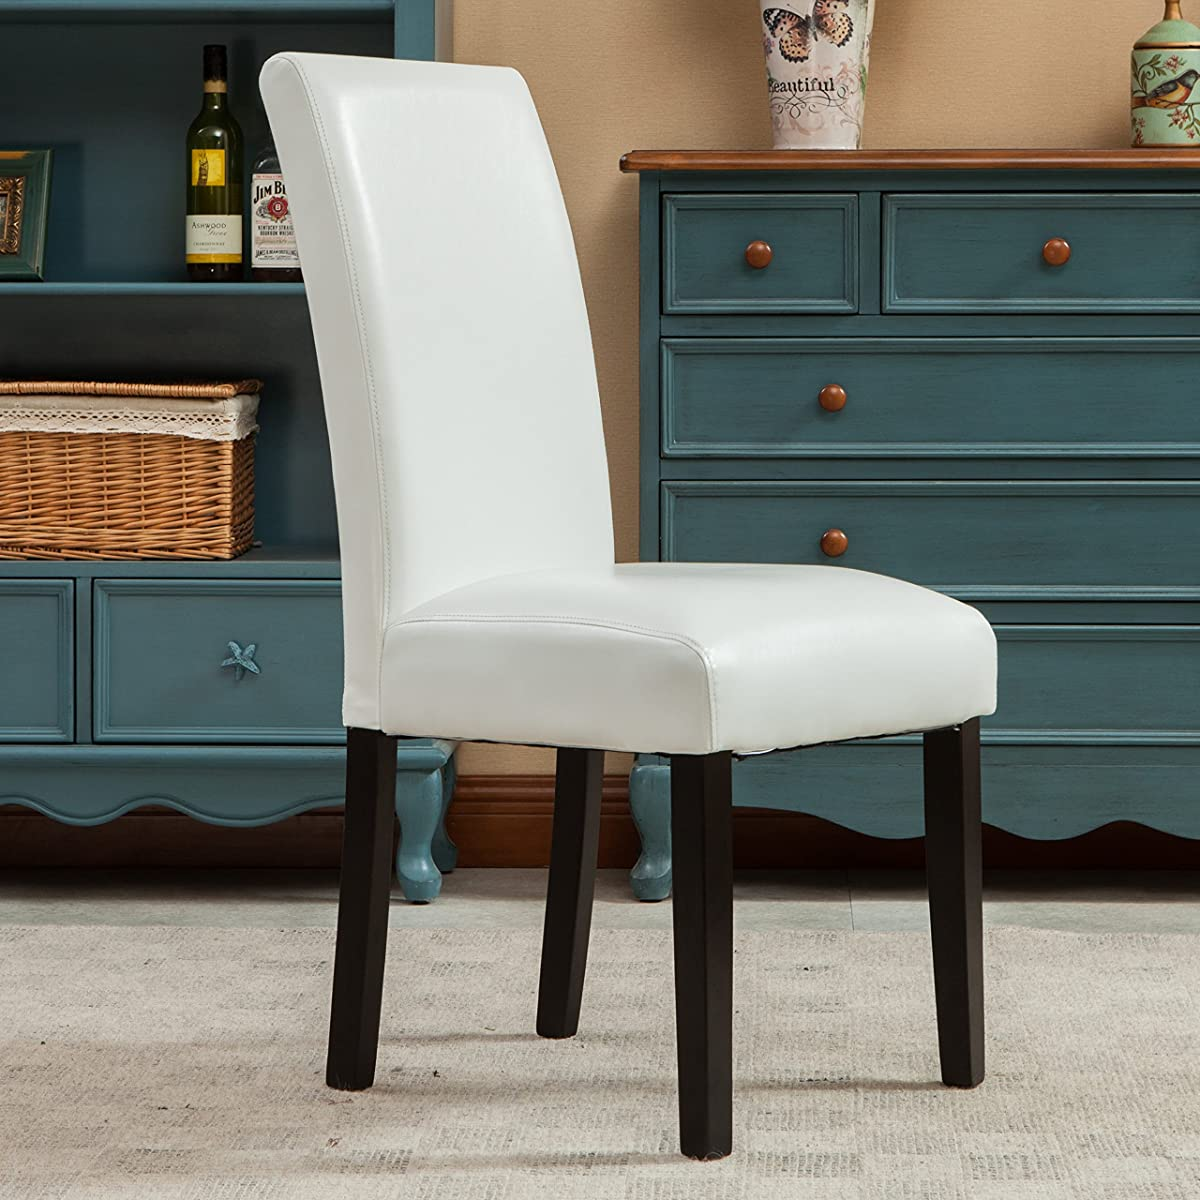 Roundhill Furniture Donatello Urban Style Solid Wood Leatherette Padded Parson Chair (Set of 2), White